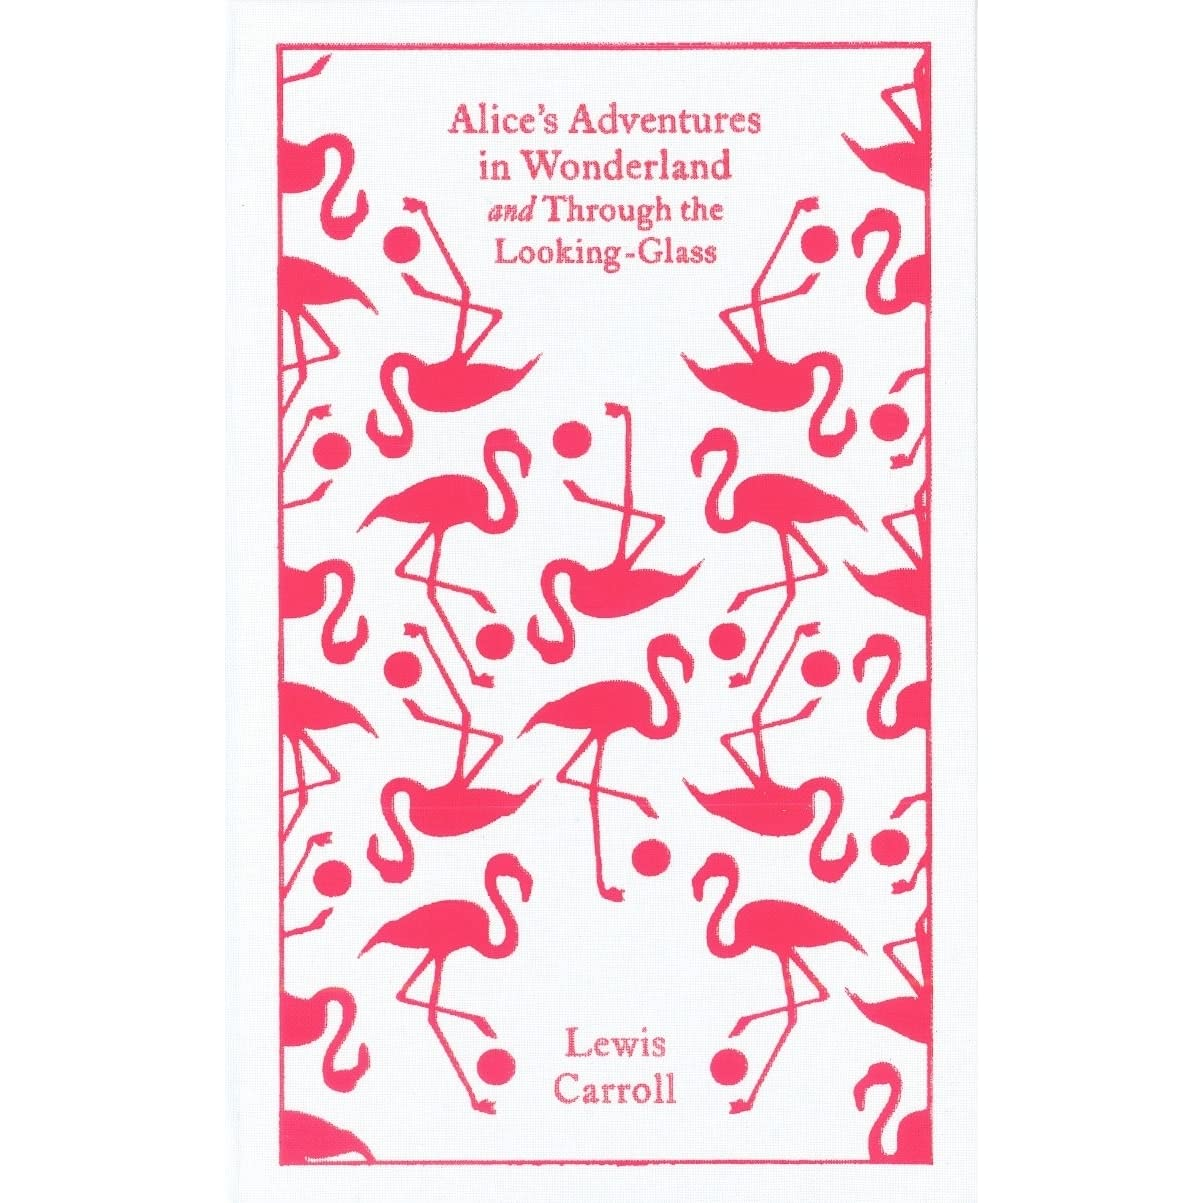 The Smiths Penguin Book Covers : Alice s adventures in wonderland and through the looking